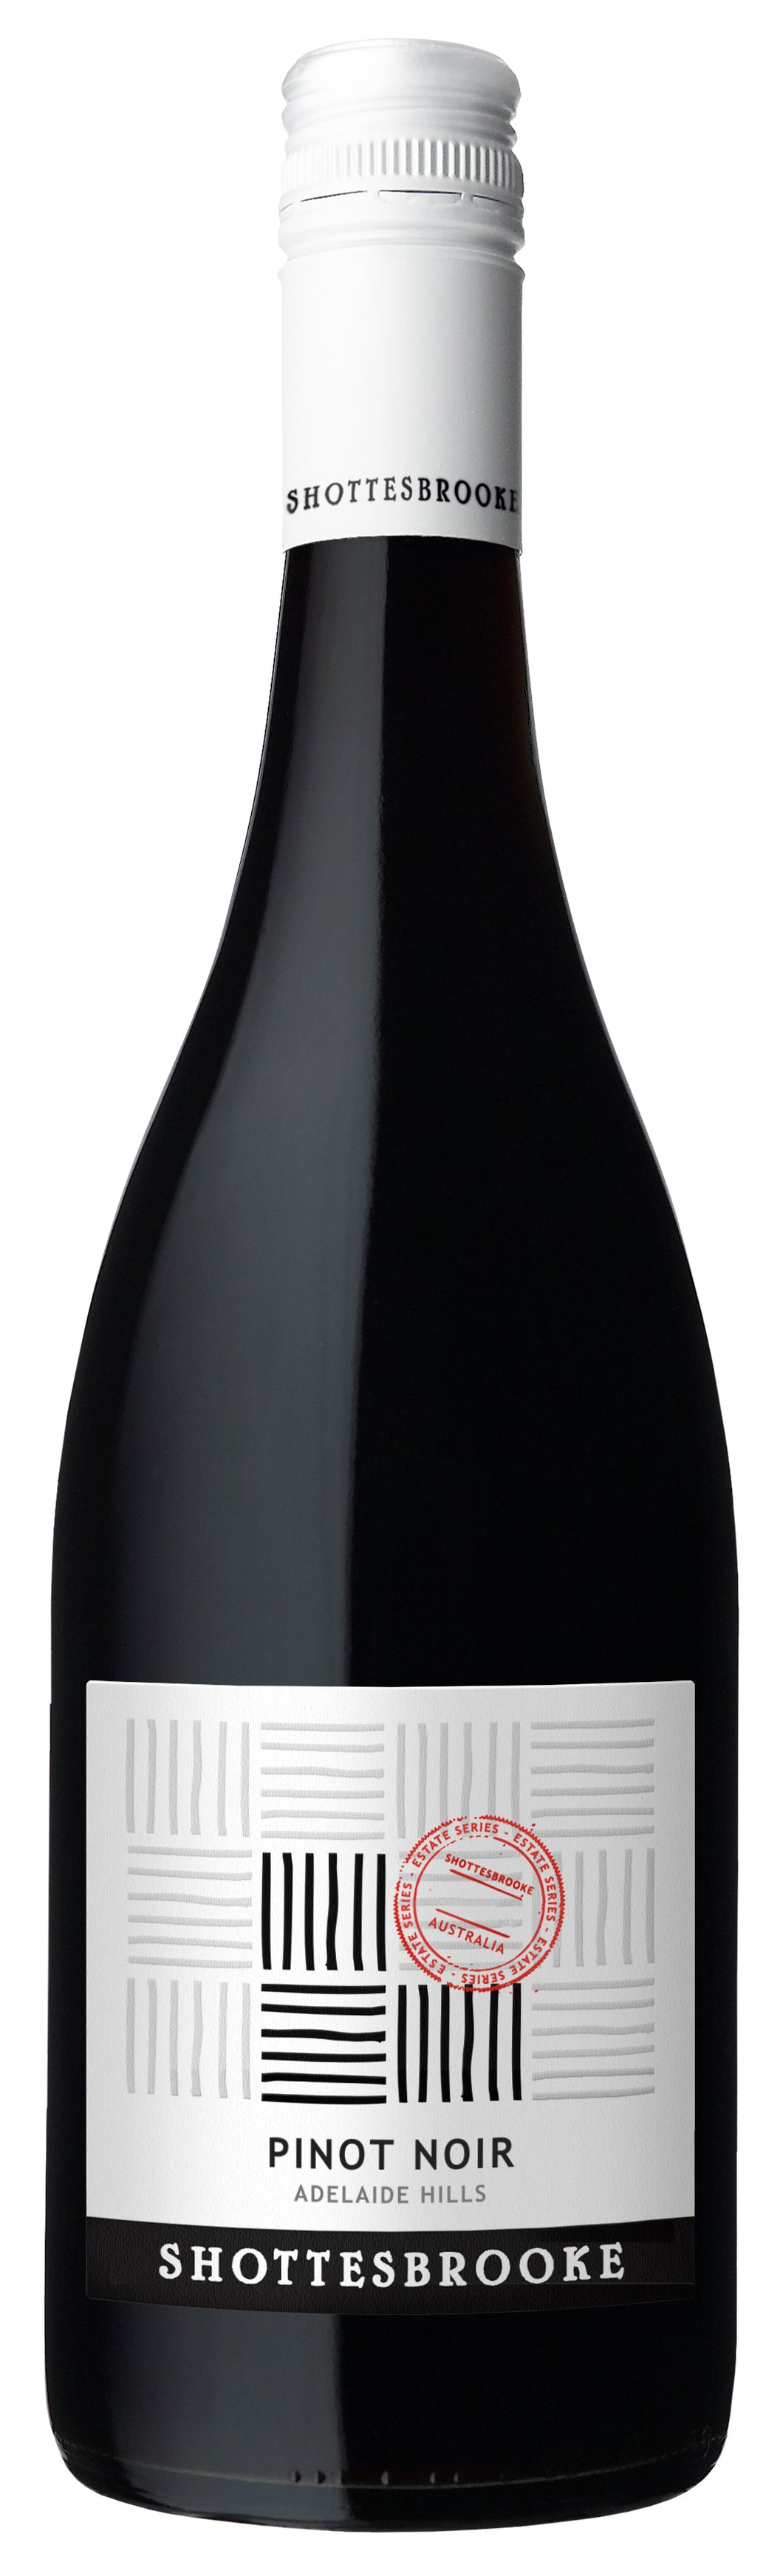 Shottesbrooke Estate Pinot Noir 2016